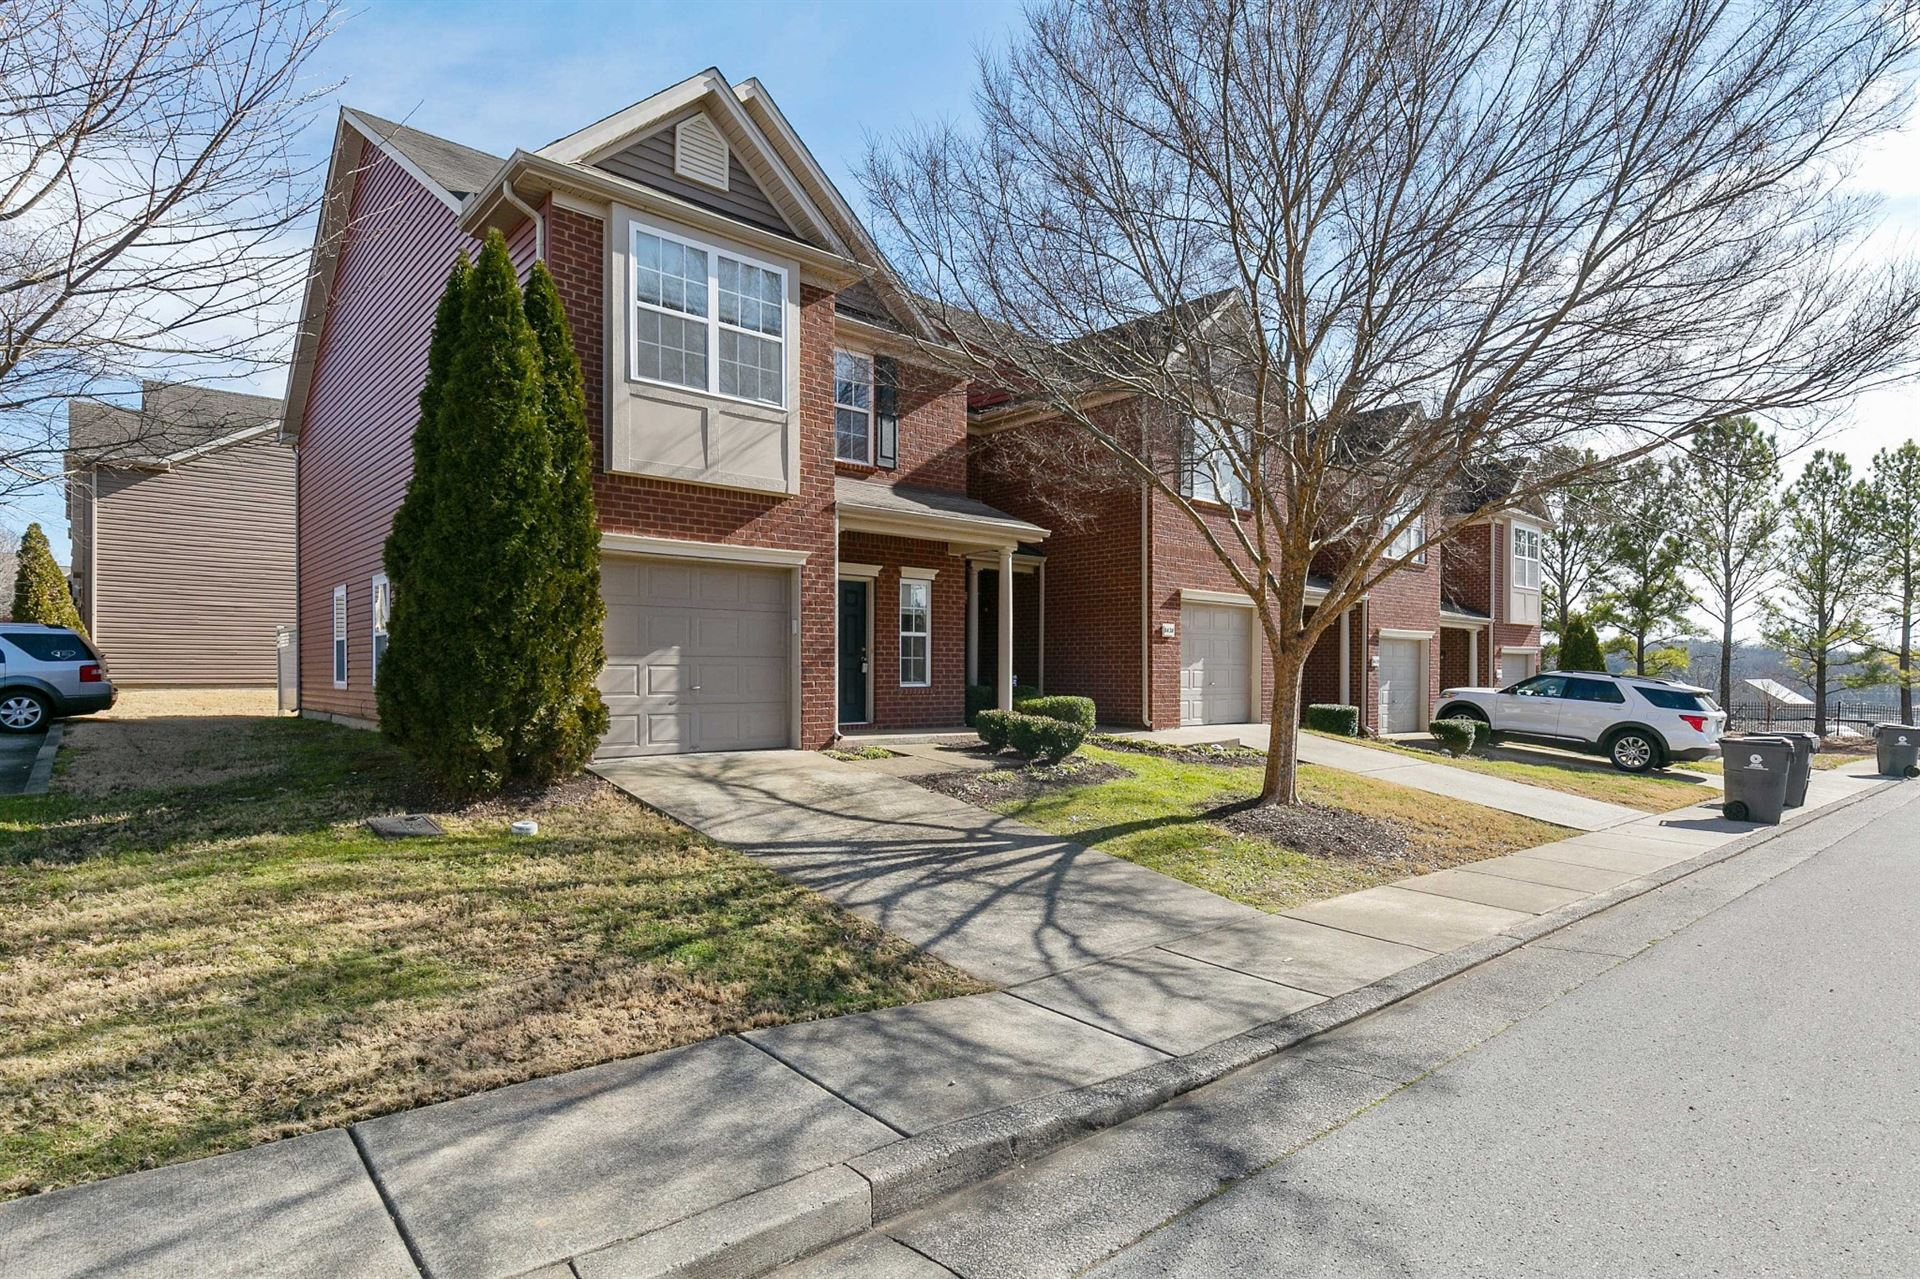 Photo of 8432 Charbay Cir, Brentwood, TN 37027 (MLS # 2222356)